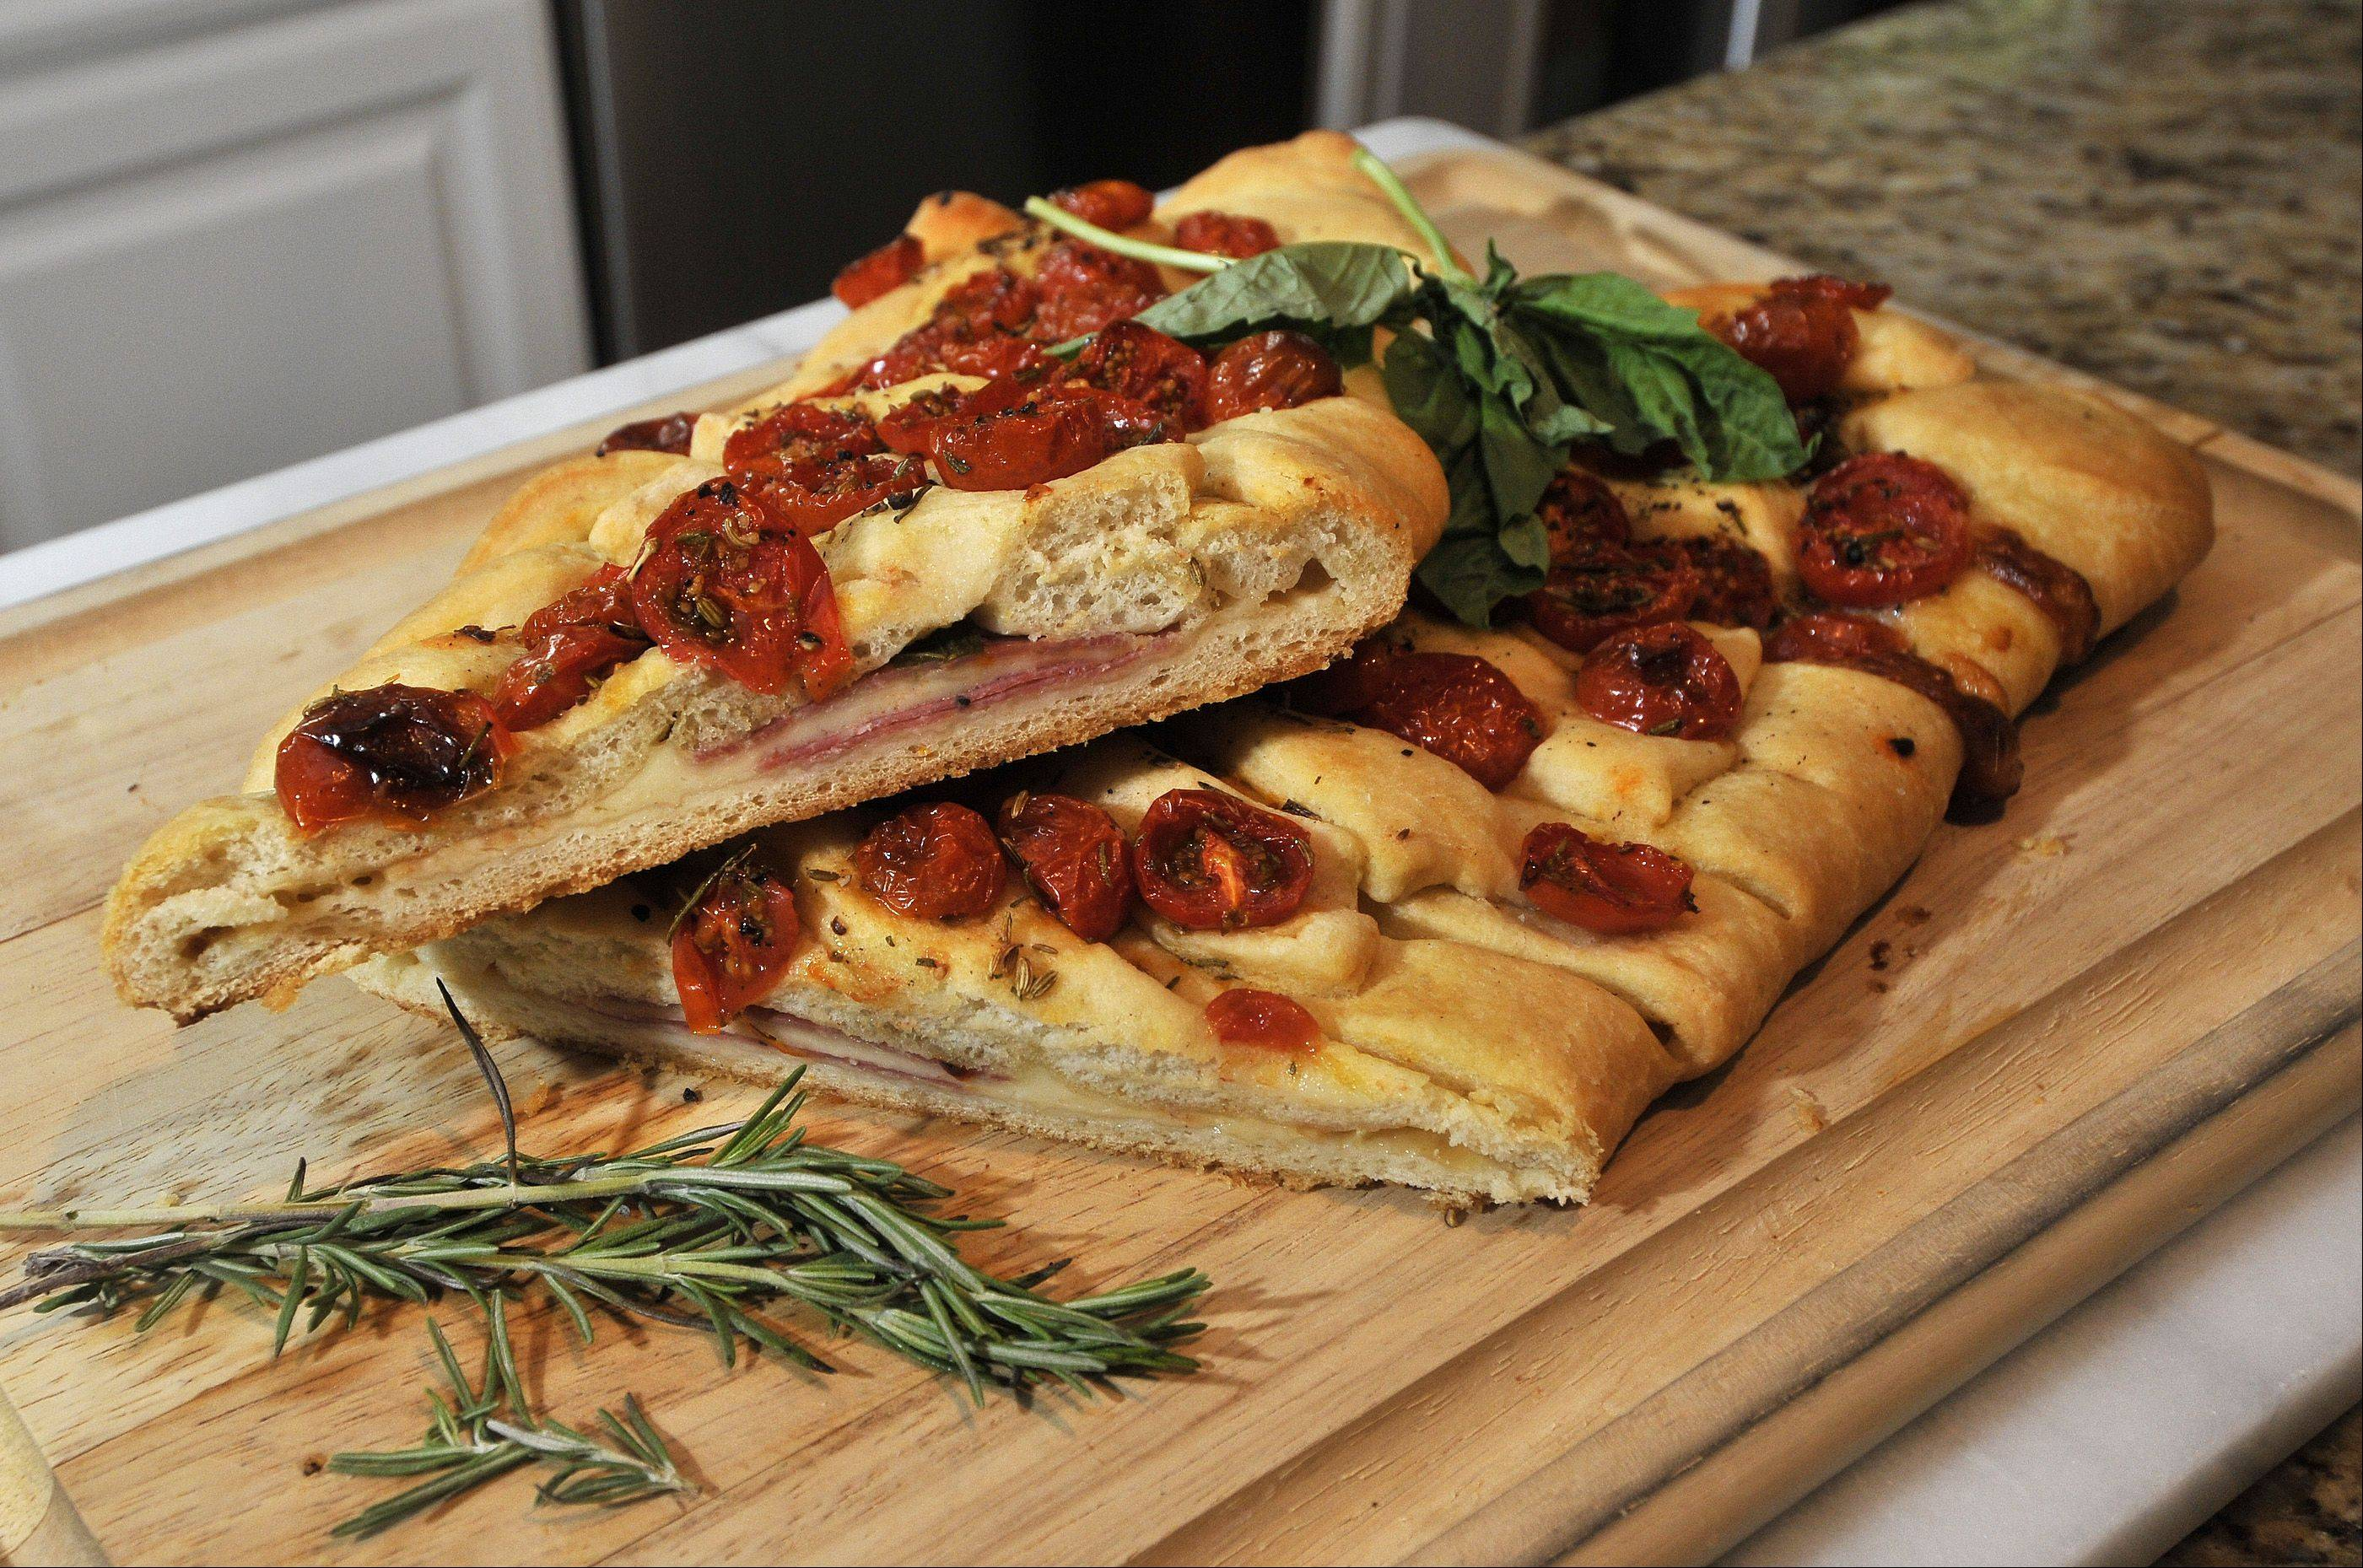 Brian Emmett displays his Italian Stromboli pastry in his Itasca kitchen.